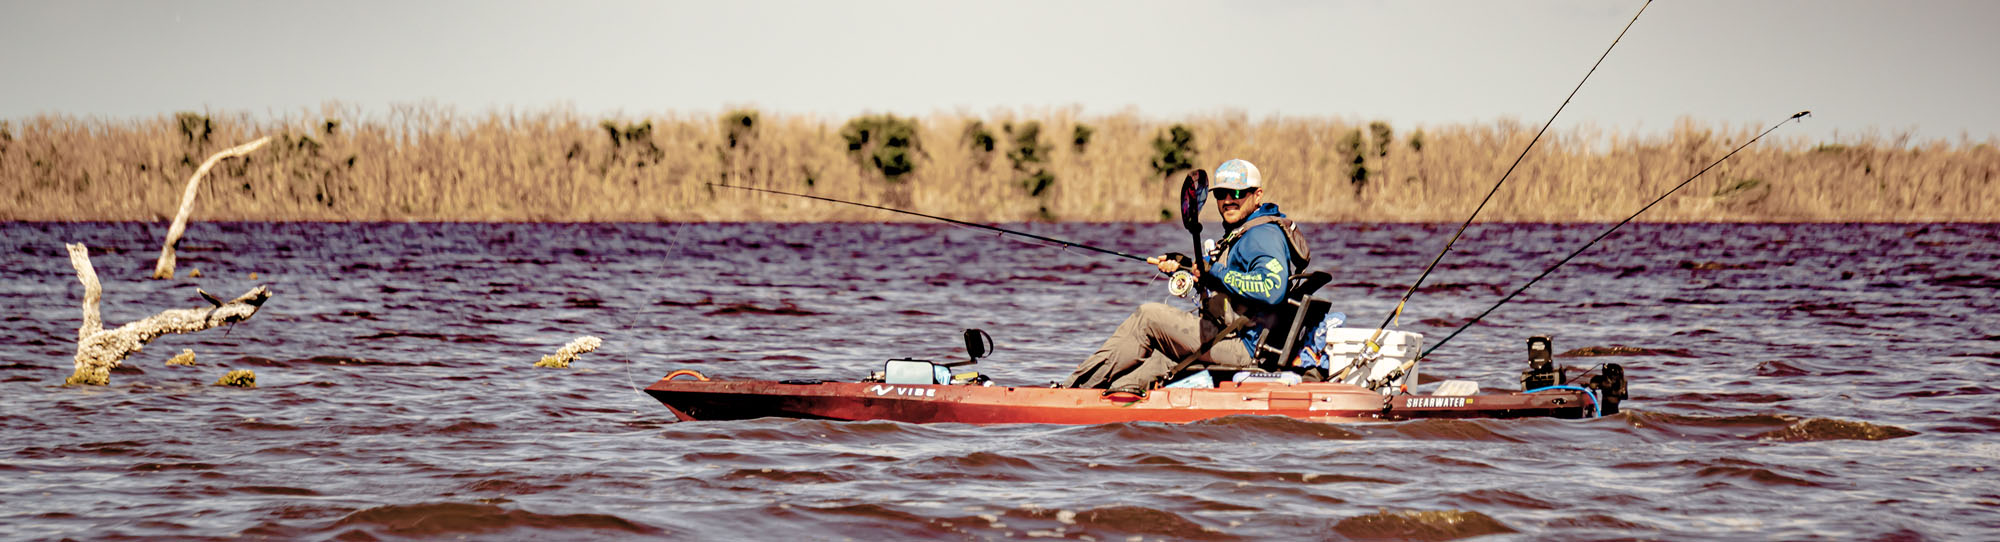 Man paddling saltwater fishing kayak